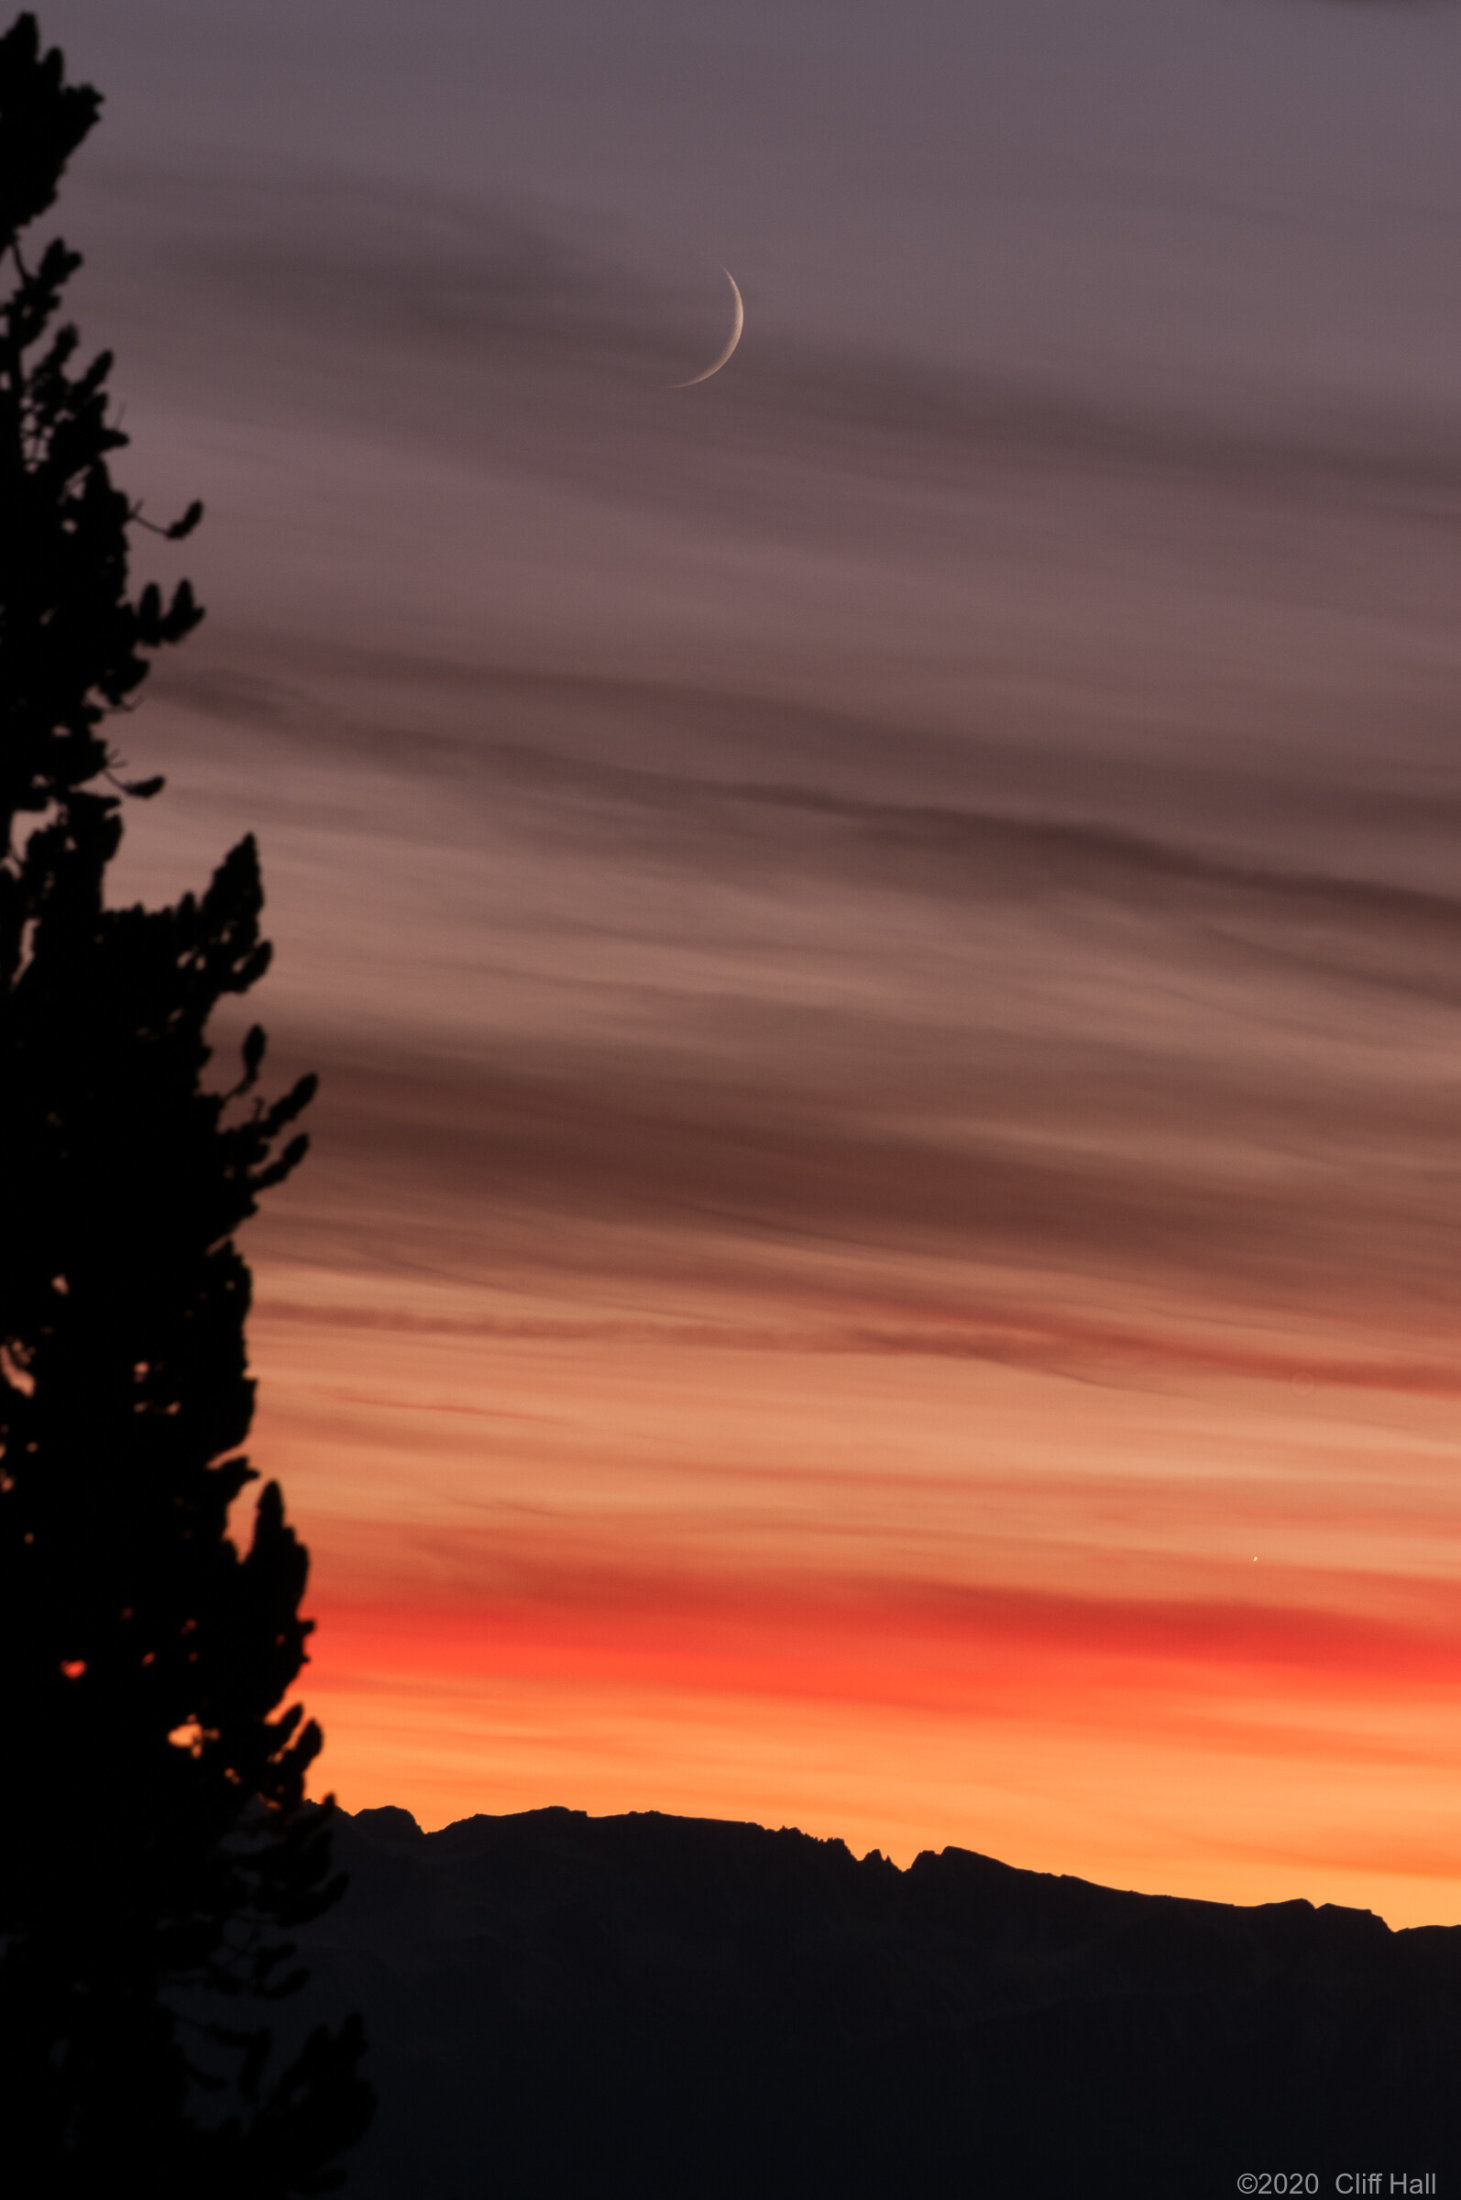 Sunset and Moonset